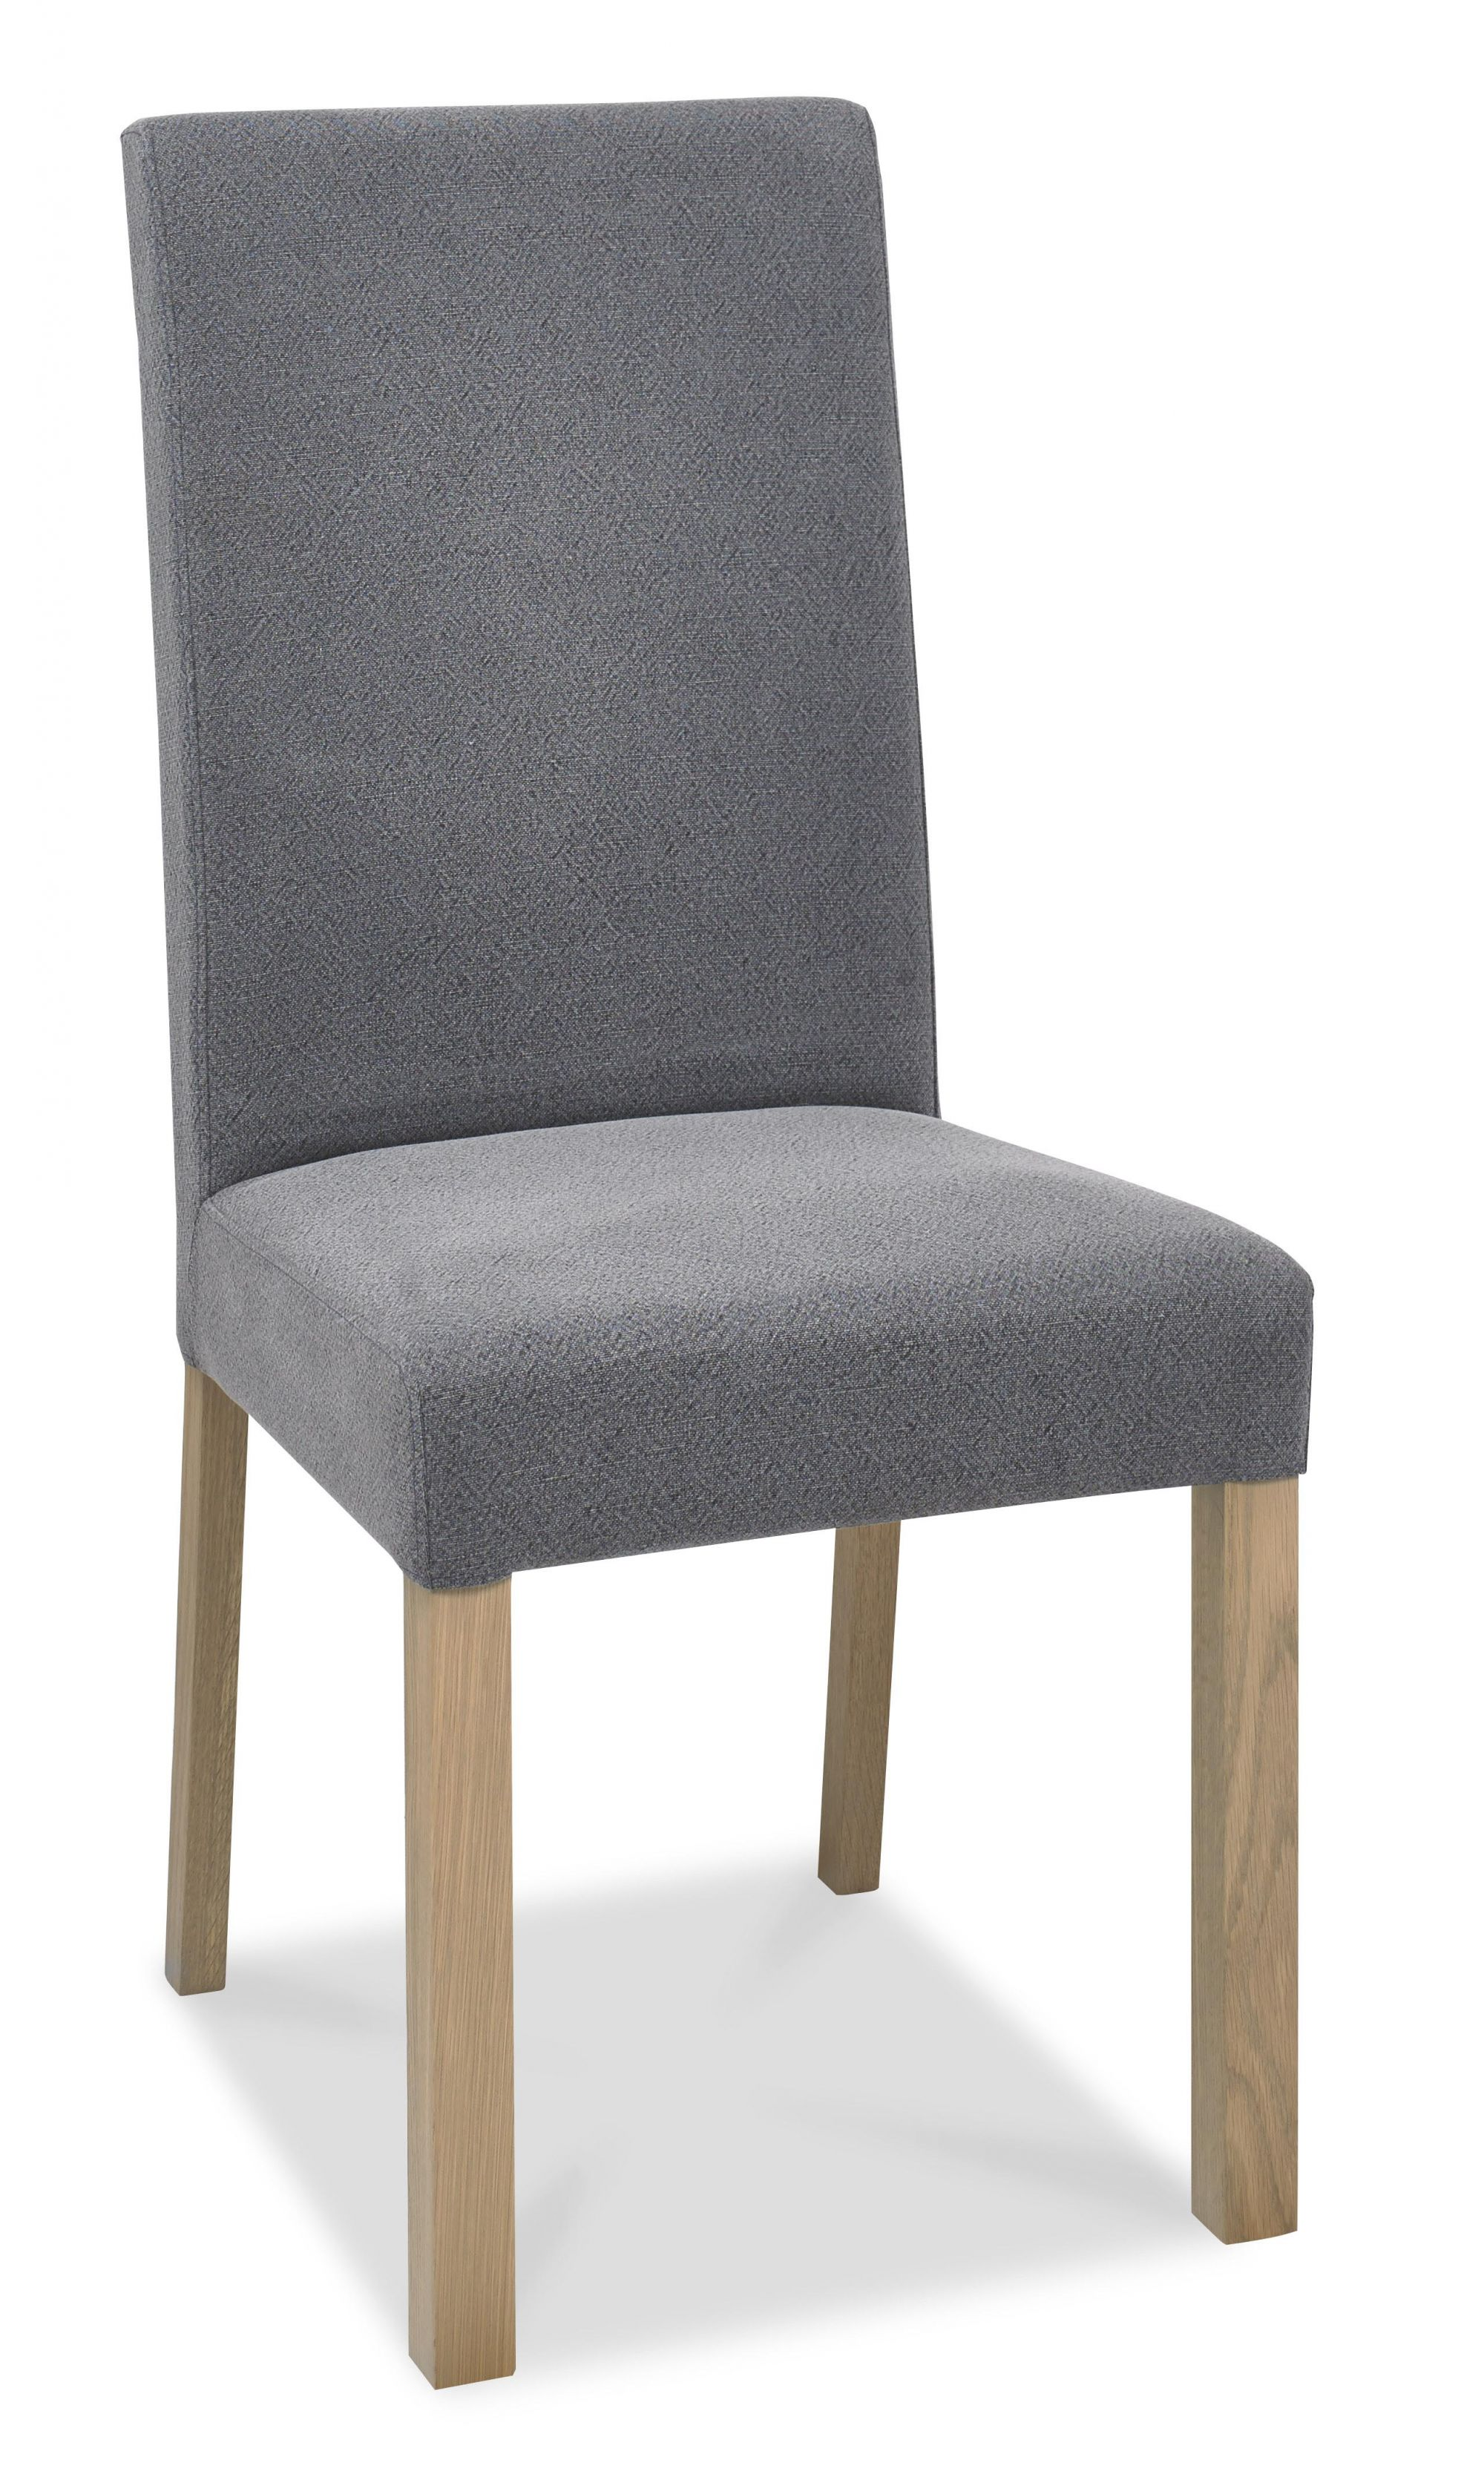 https://www.firstfurniture.co.uk/pub/media/catalog/product/2/6/2640-09sq-sb-c1.jpg